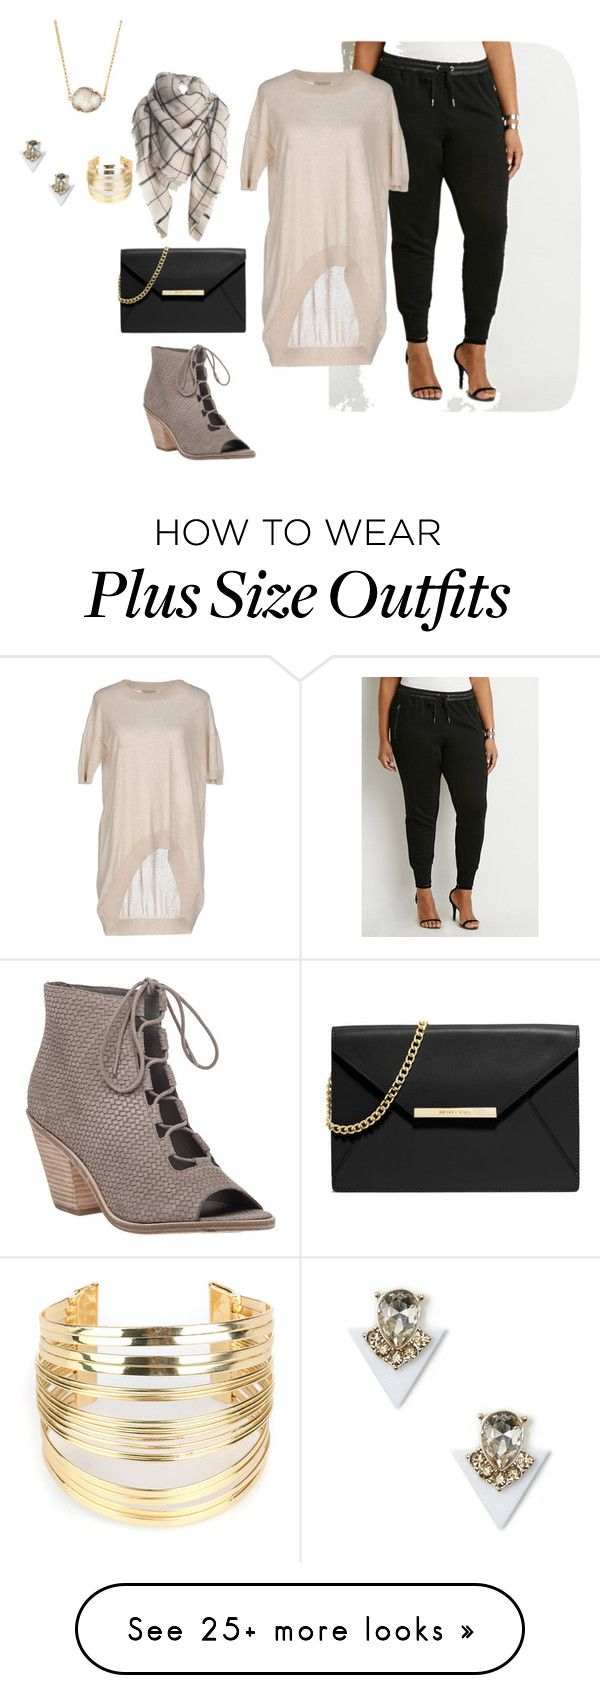 plain friday night outfits plus size